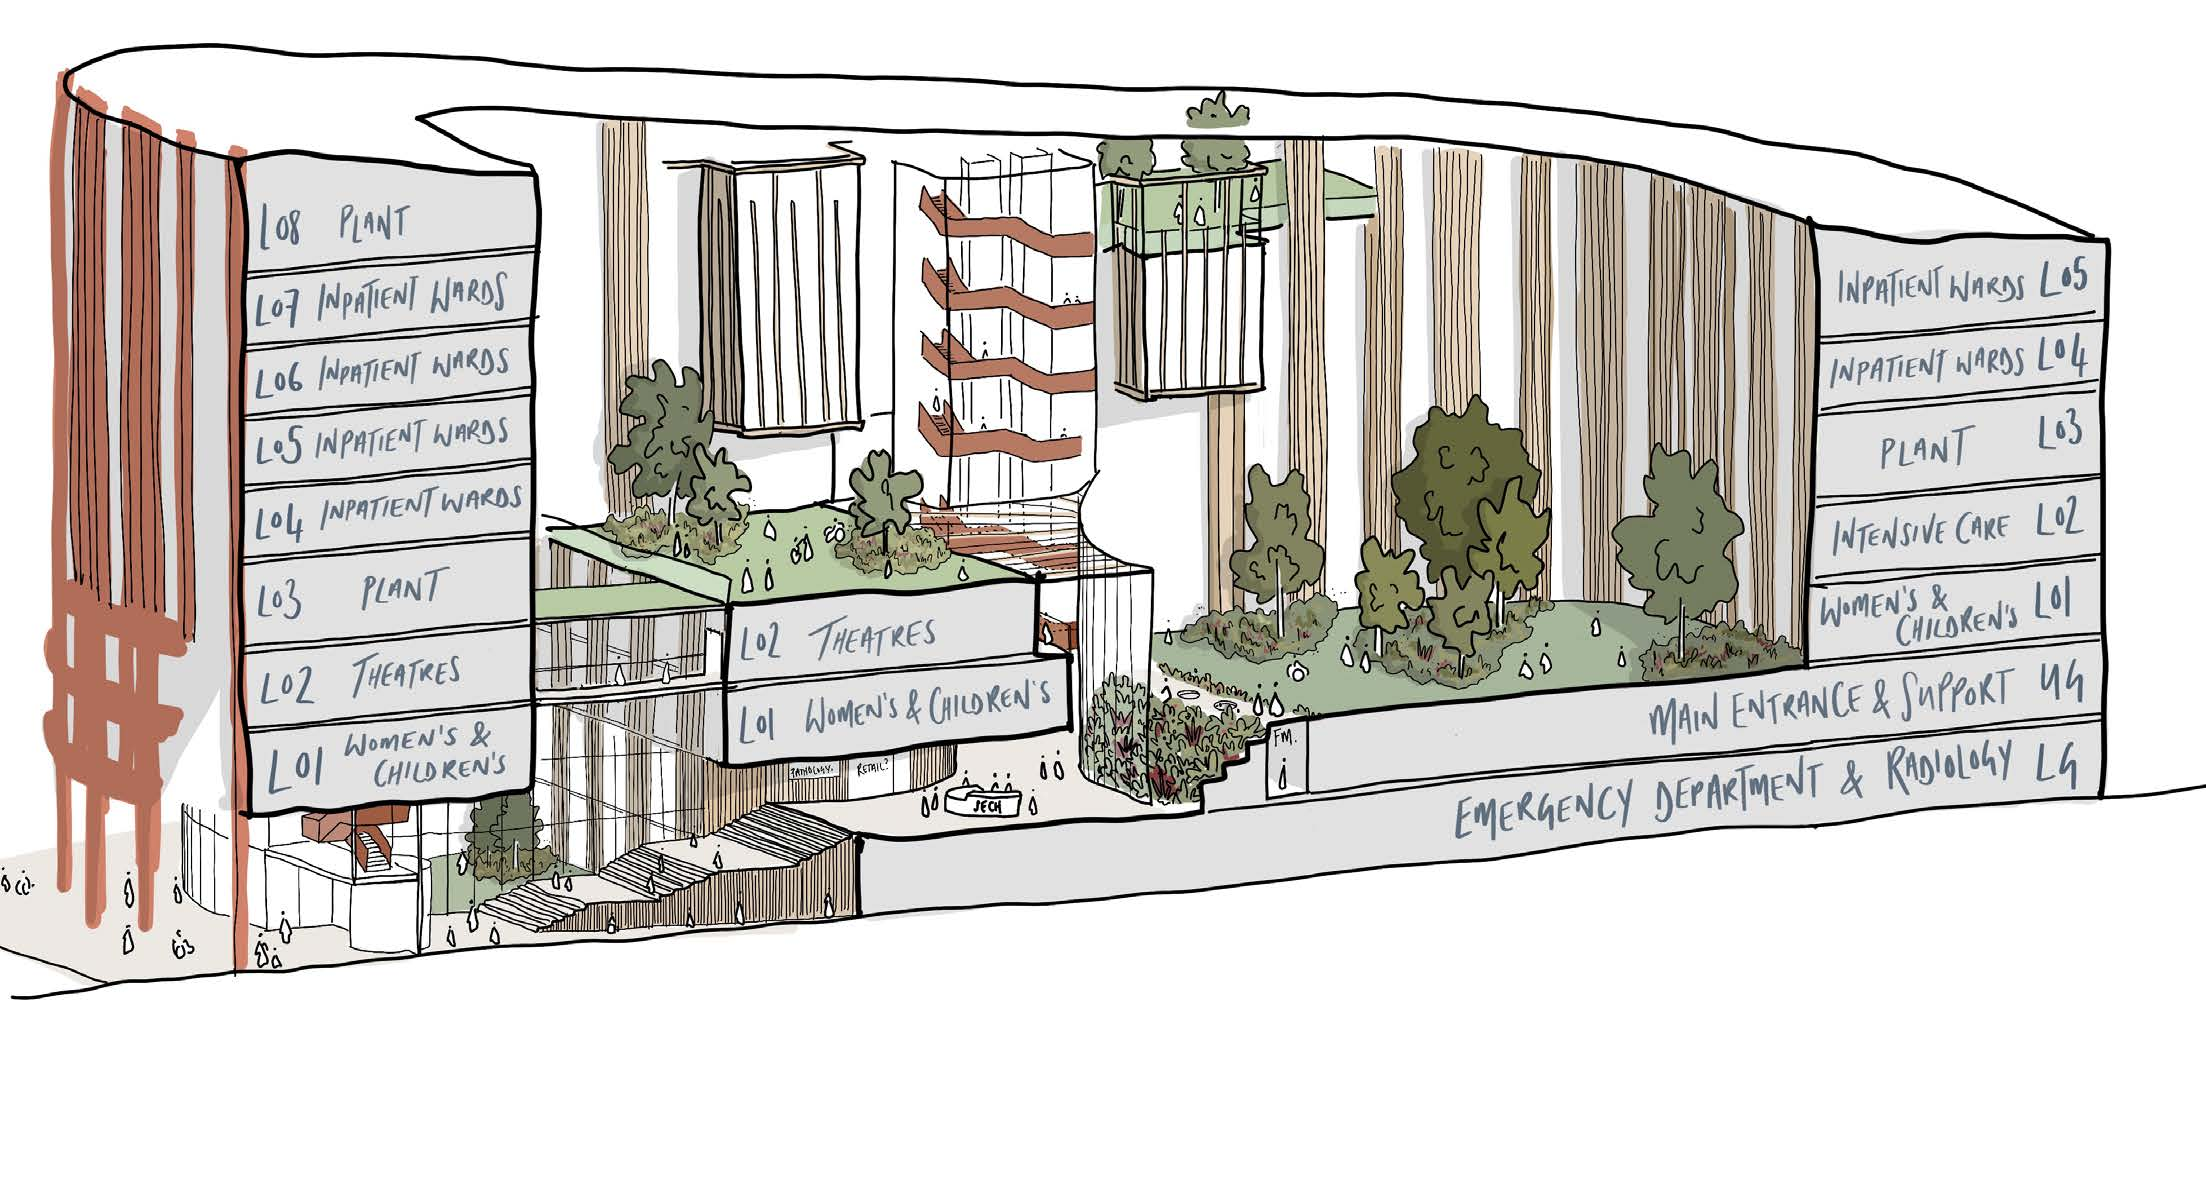 Sketch showing the entrance and internal courtyards with proposed floor uses labelled